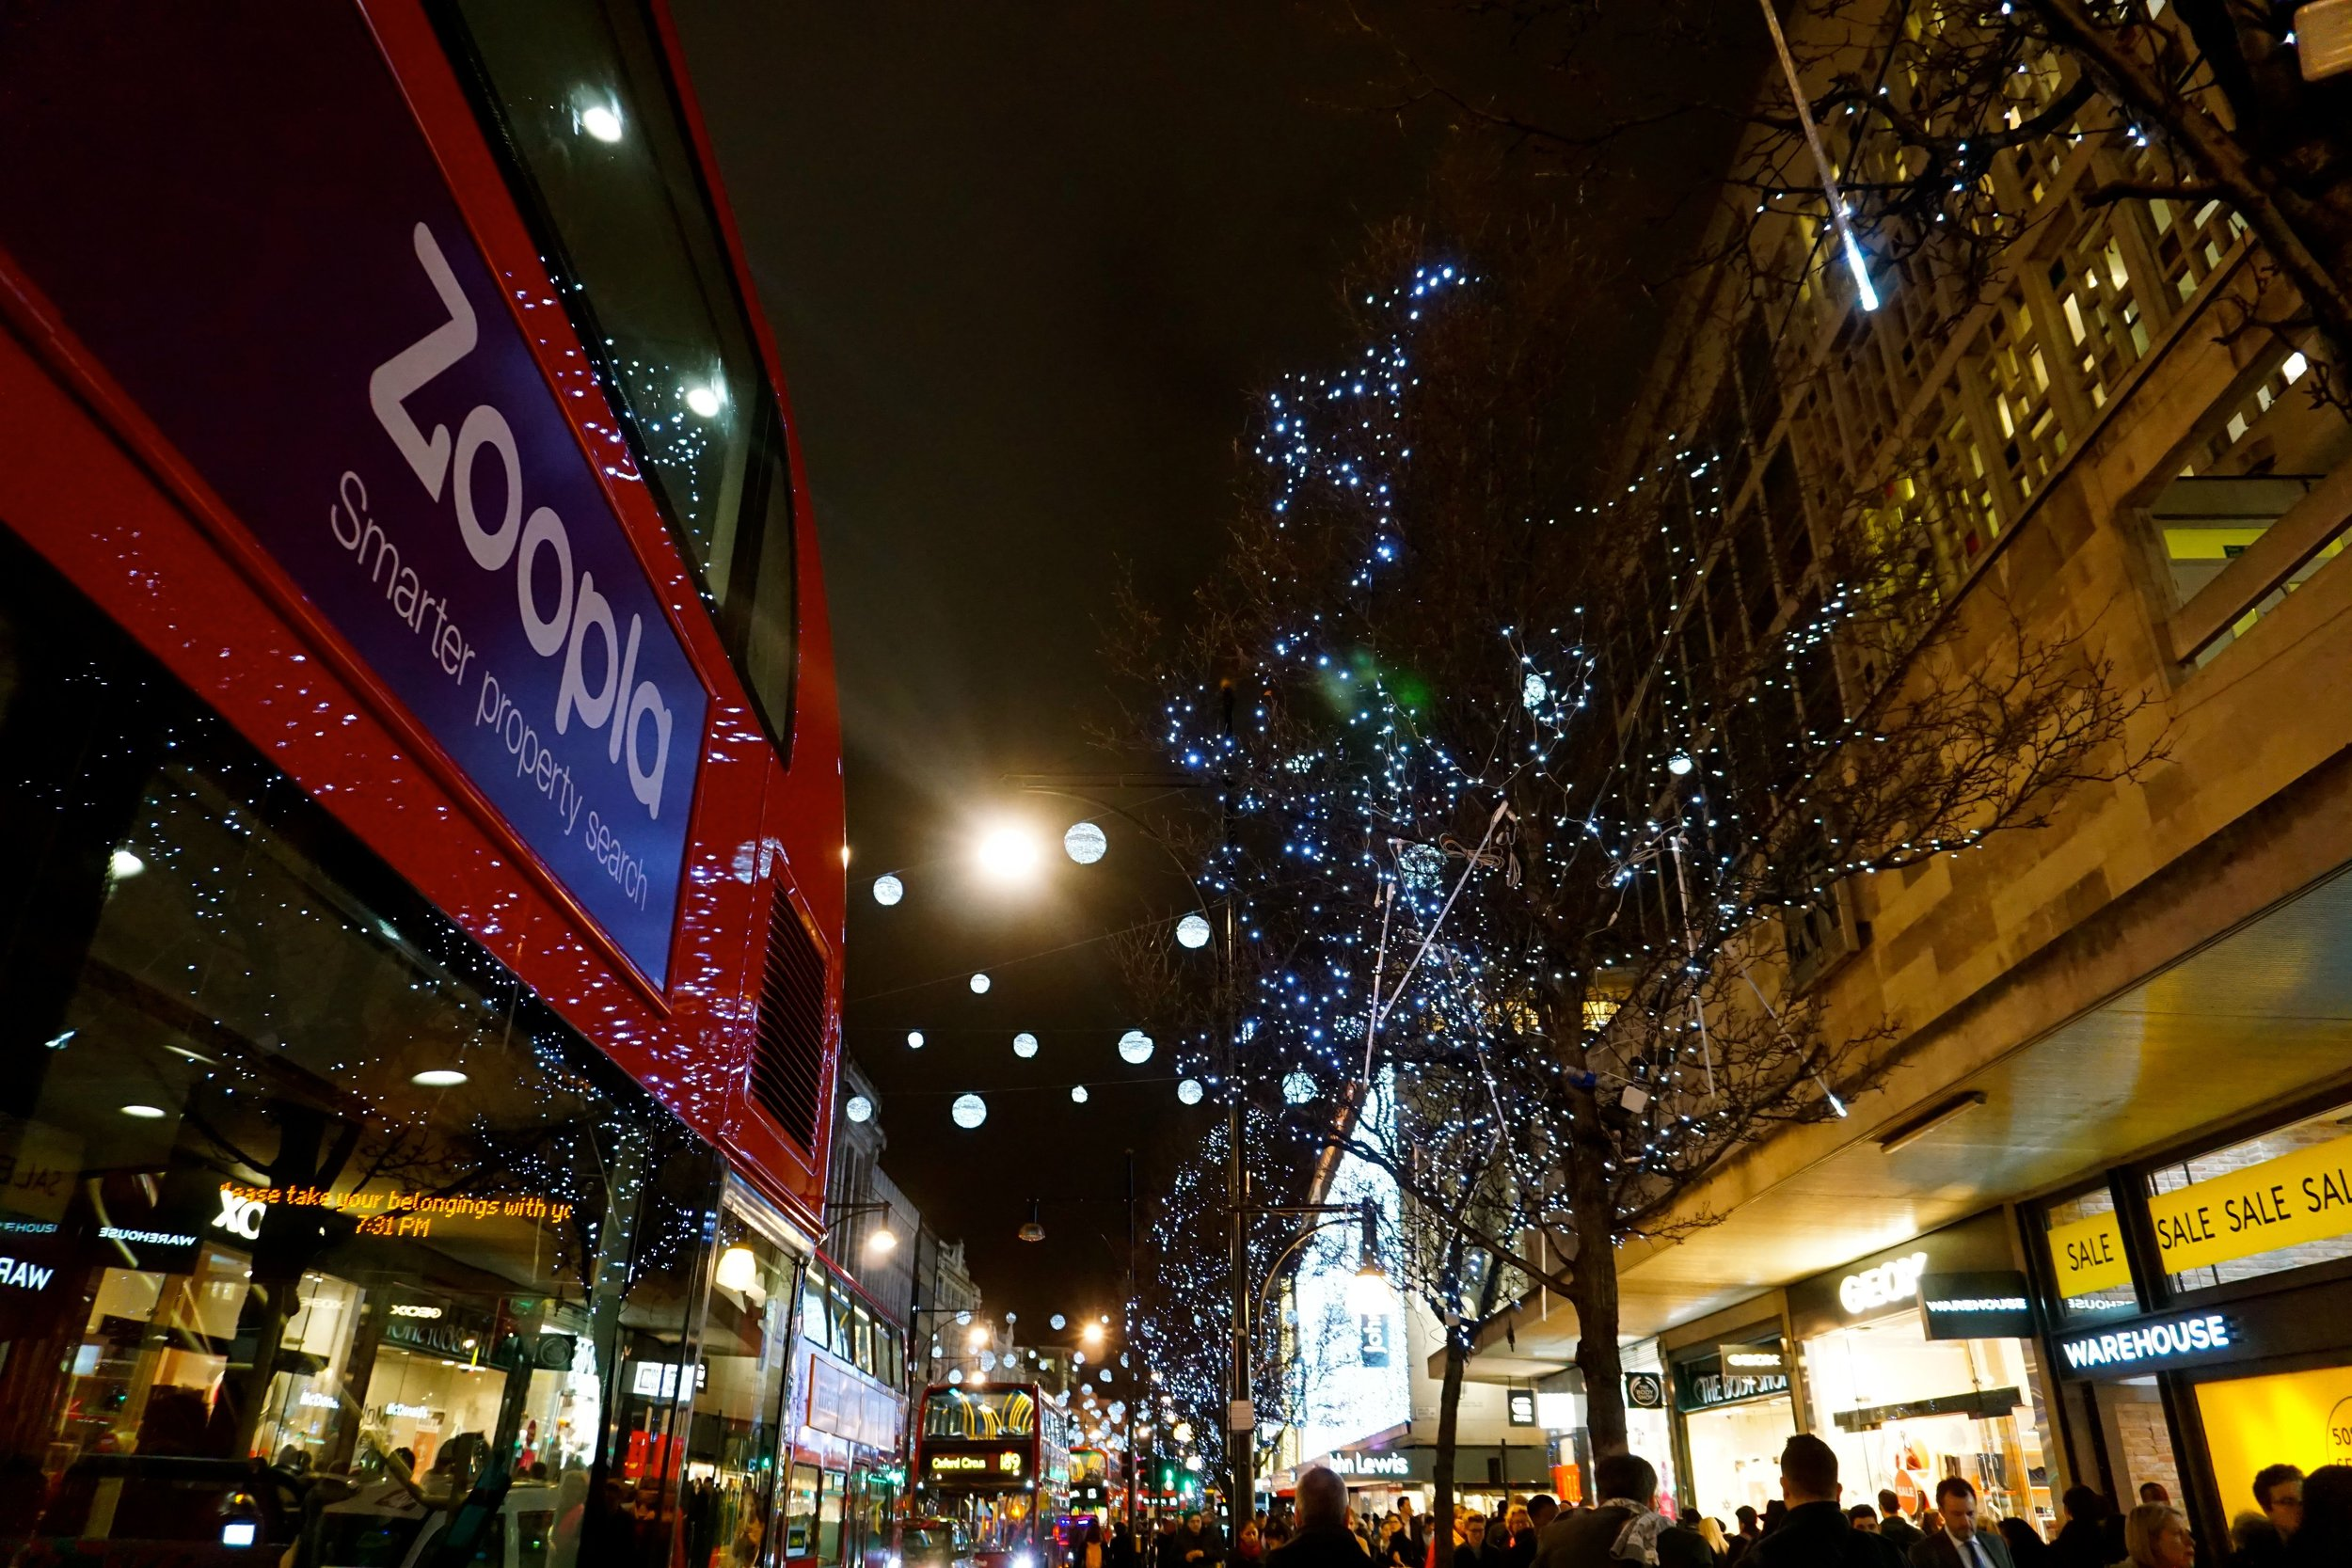 Christmas lights on Oxford St, London